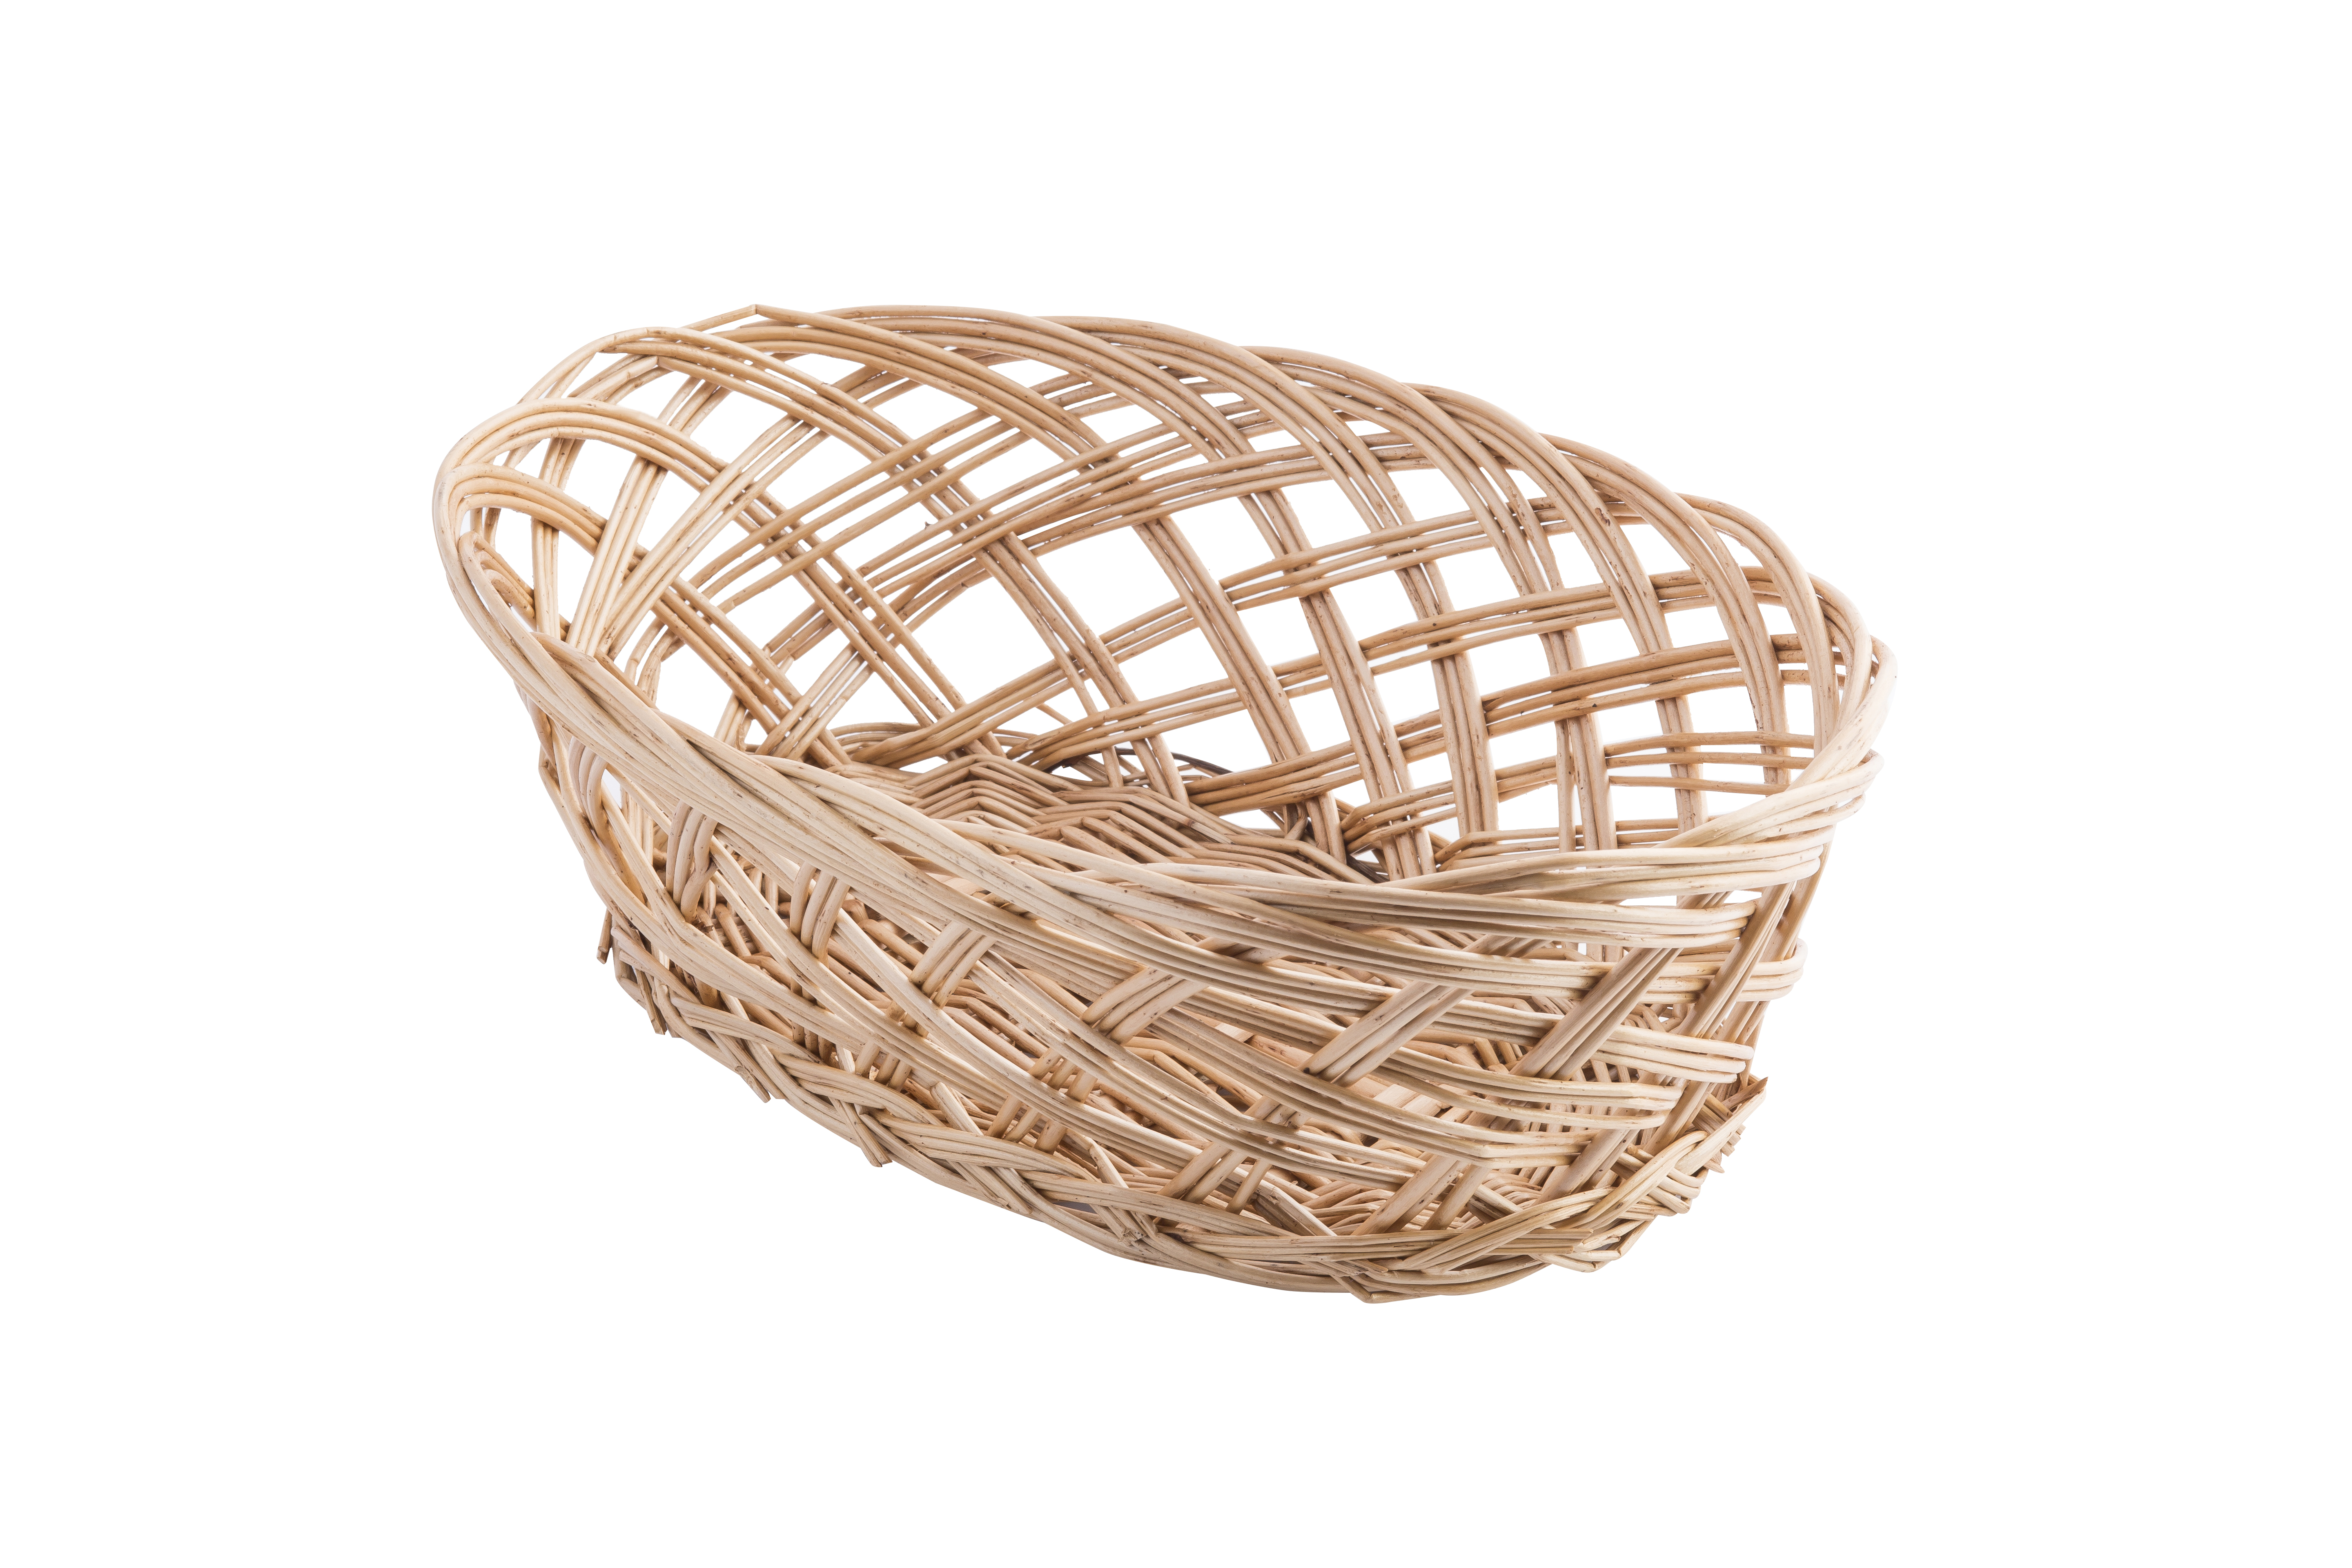 TableCraft Products 1636 hand woven baskets